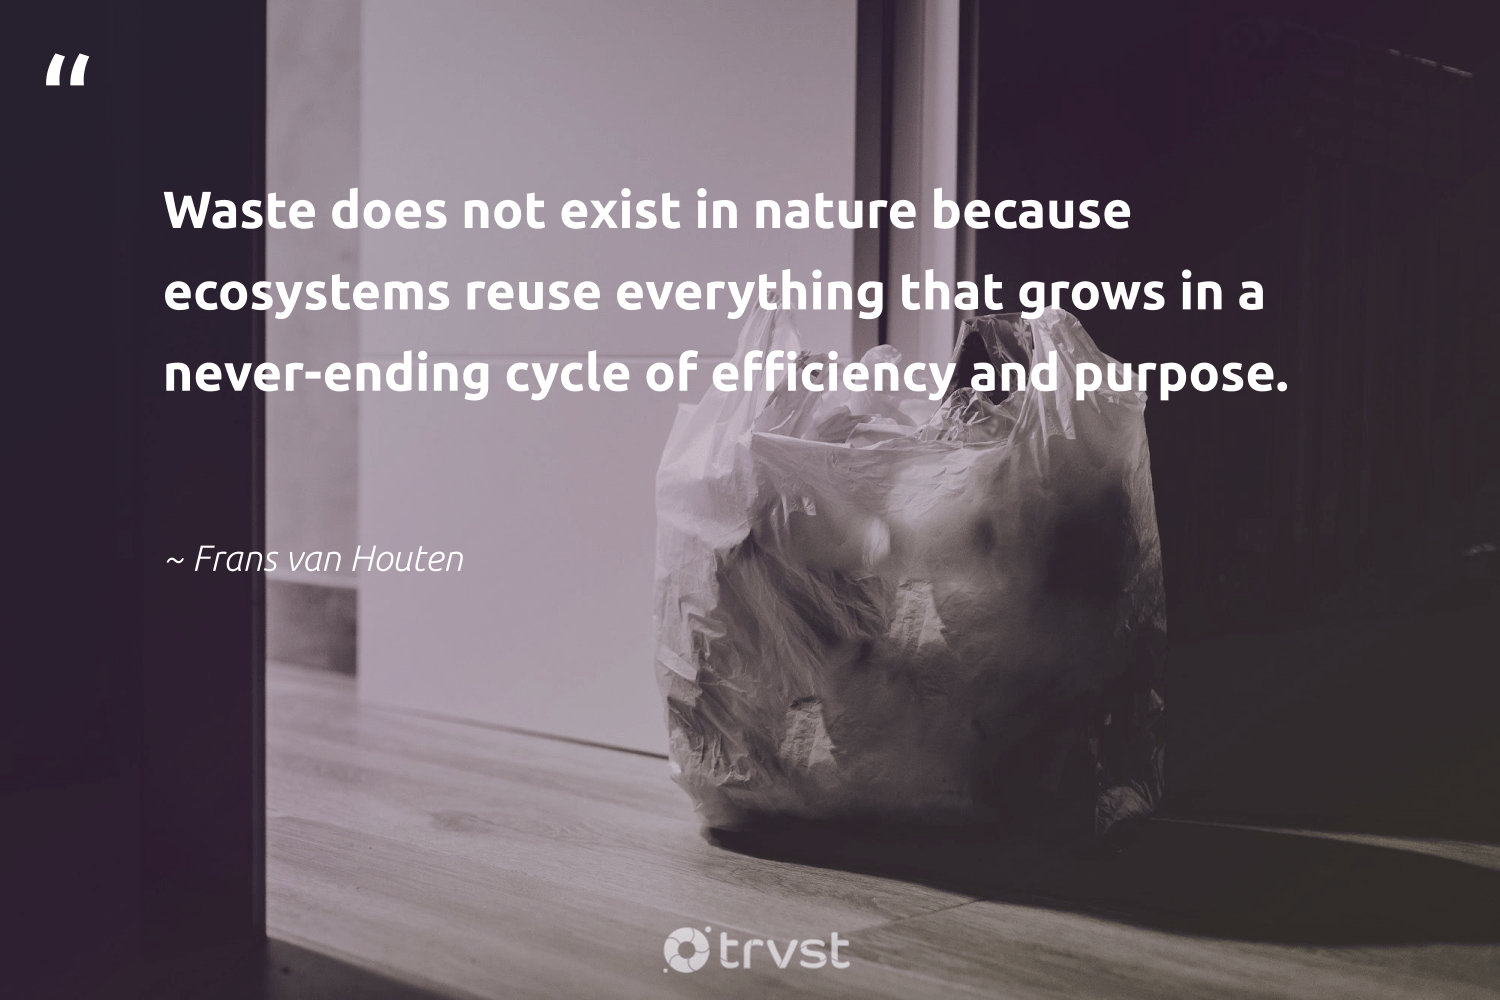 """""""Waste does not exist in nature because ecosystems reuse everything that grows in a never-ending cycle of efficiency and purpose.""""  - Frans van Houten #trvst #quotes #recycling #waste #reuse #nature #purpose #repair #dosomething #thinkgreen #beinspired #upcycling"""